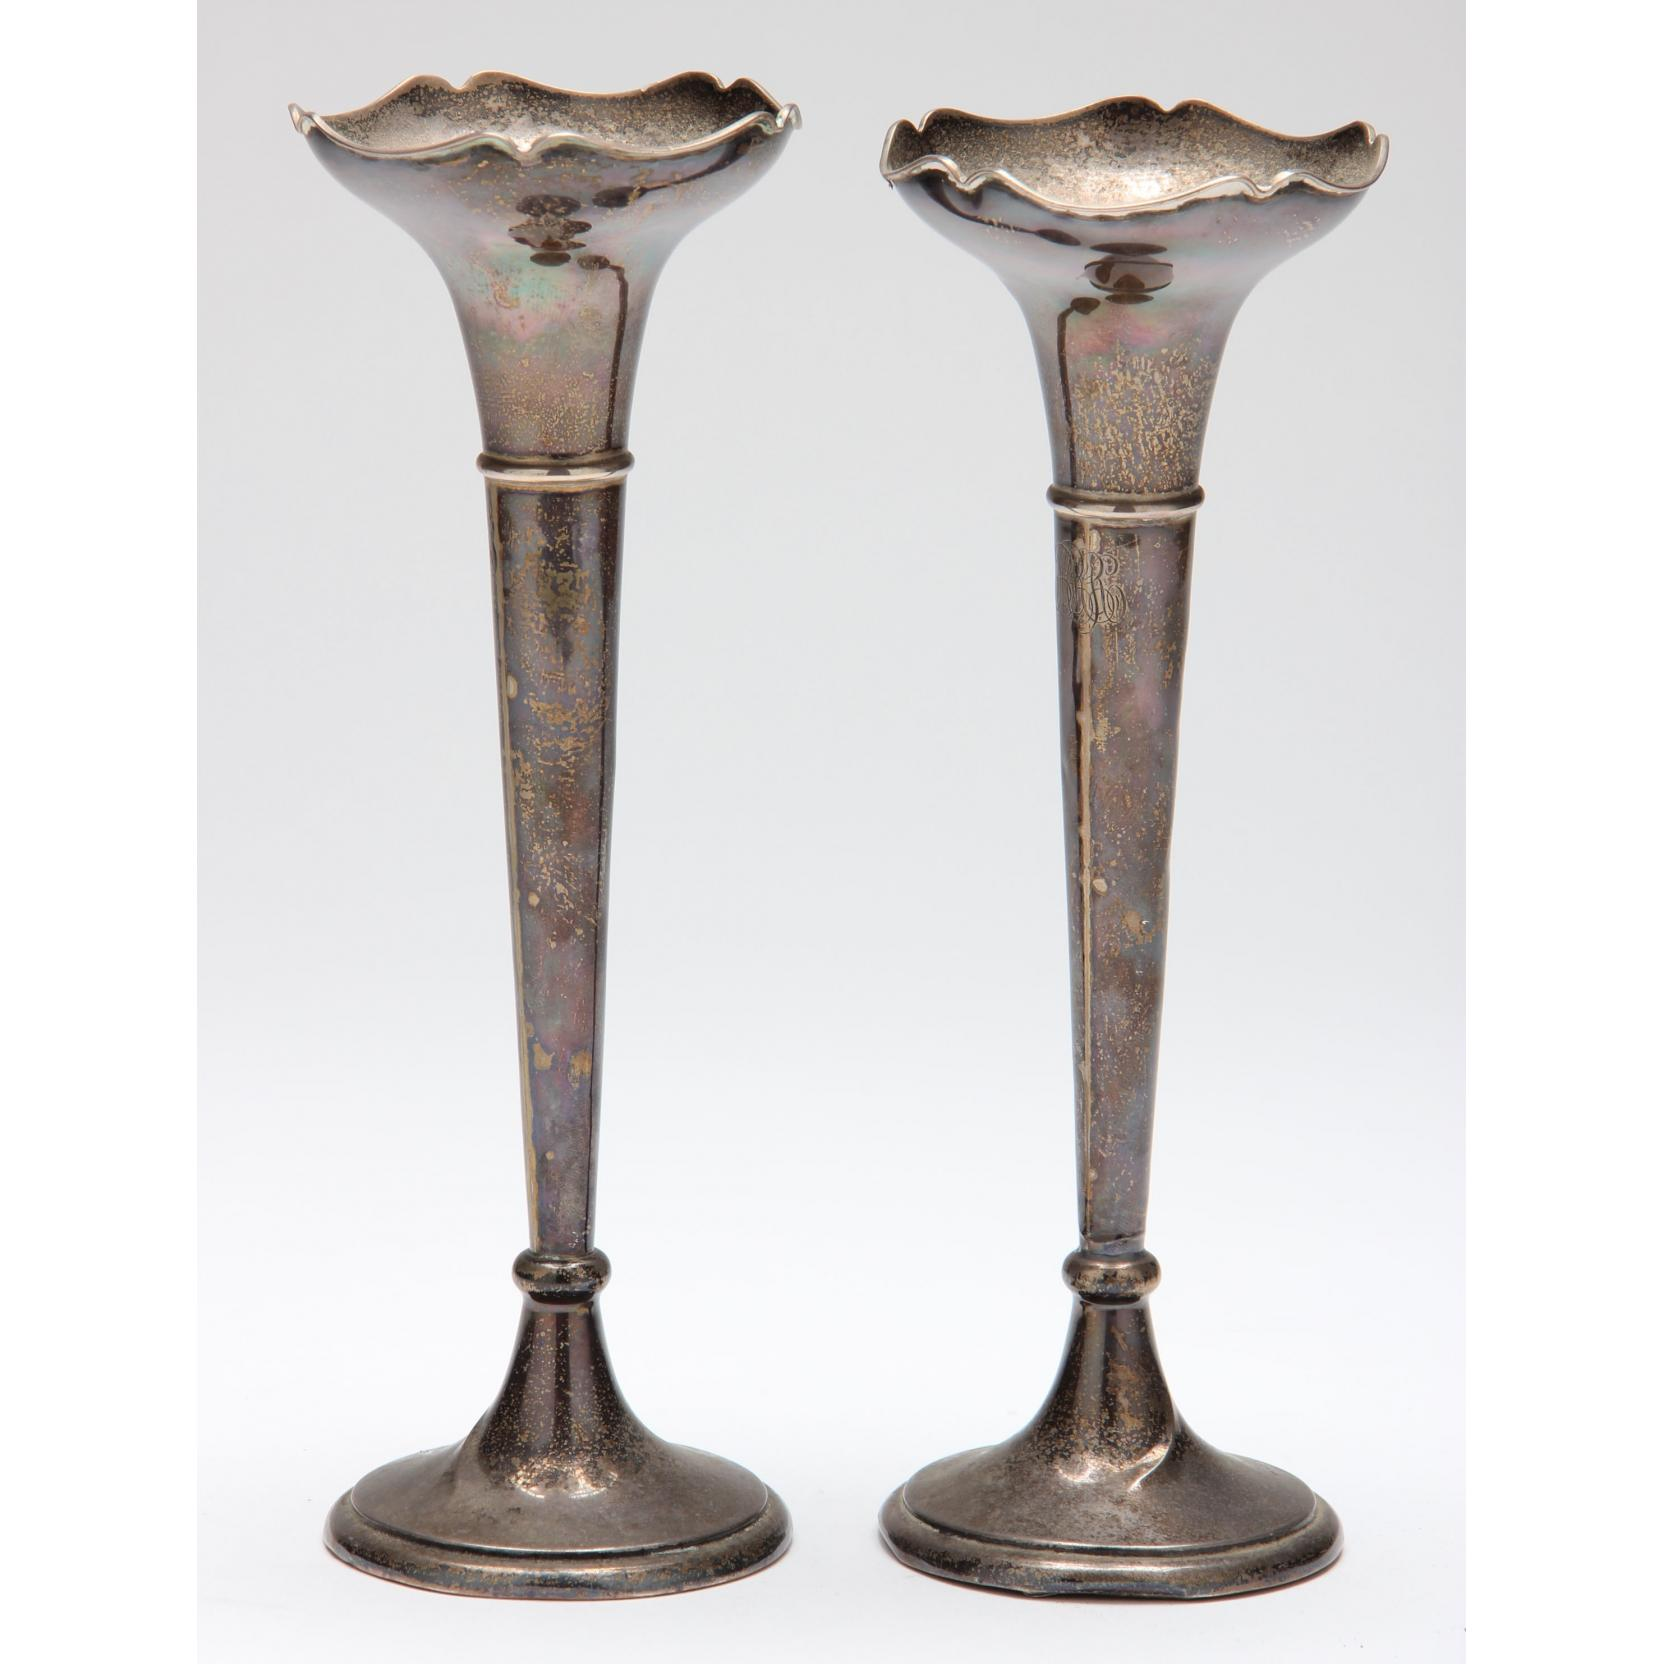 pair-of-english-art-nouveau-sterling-silver-bud-vases